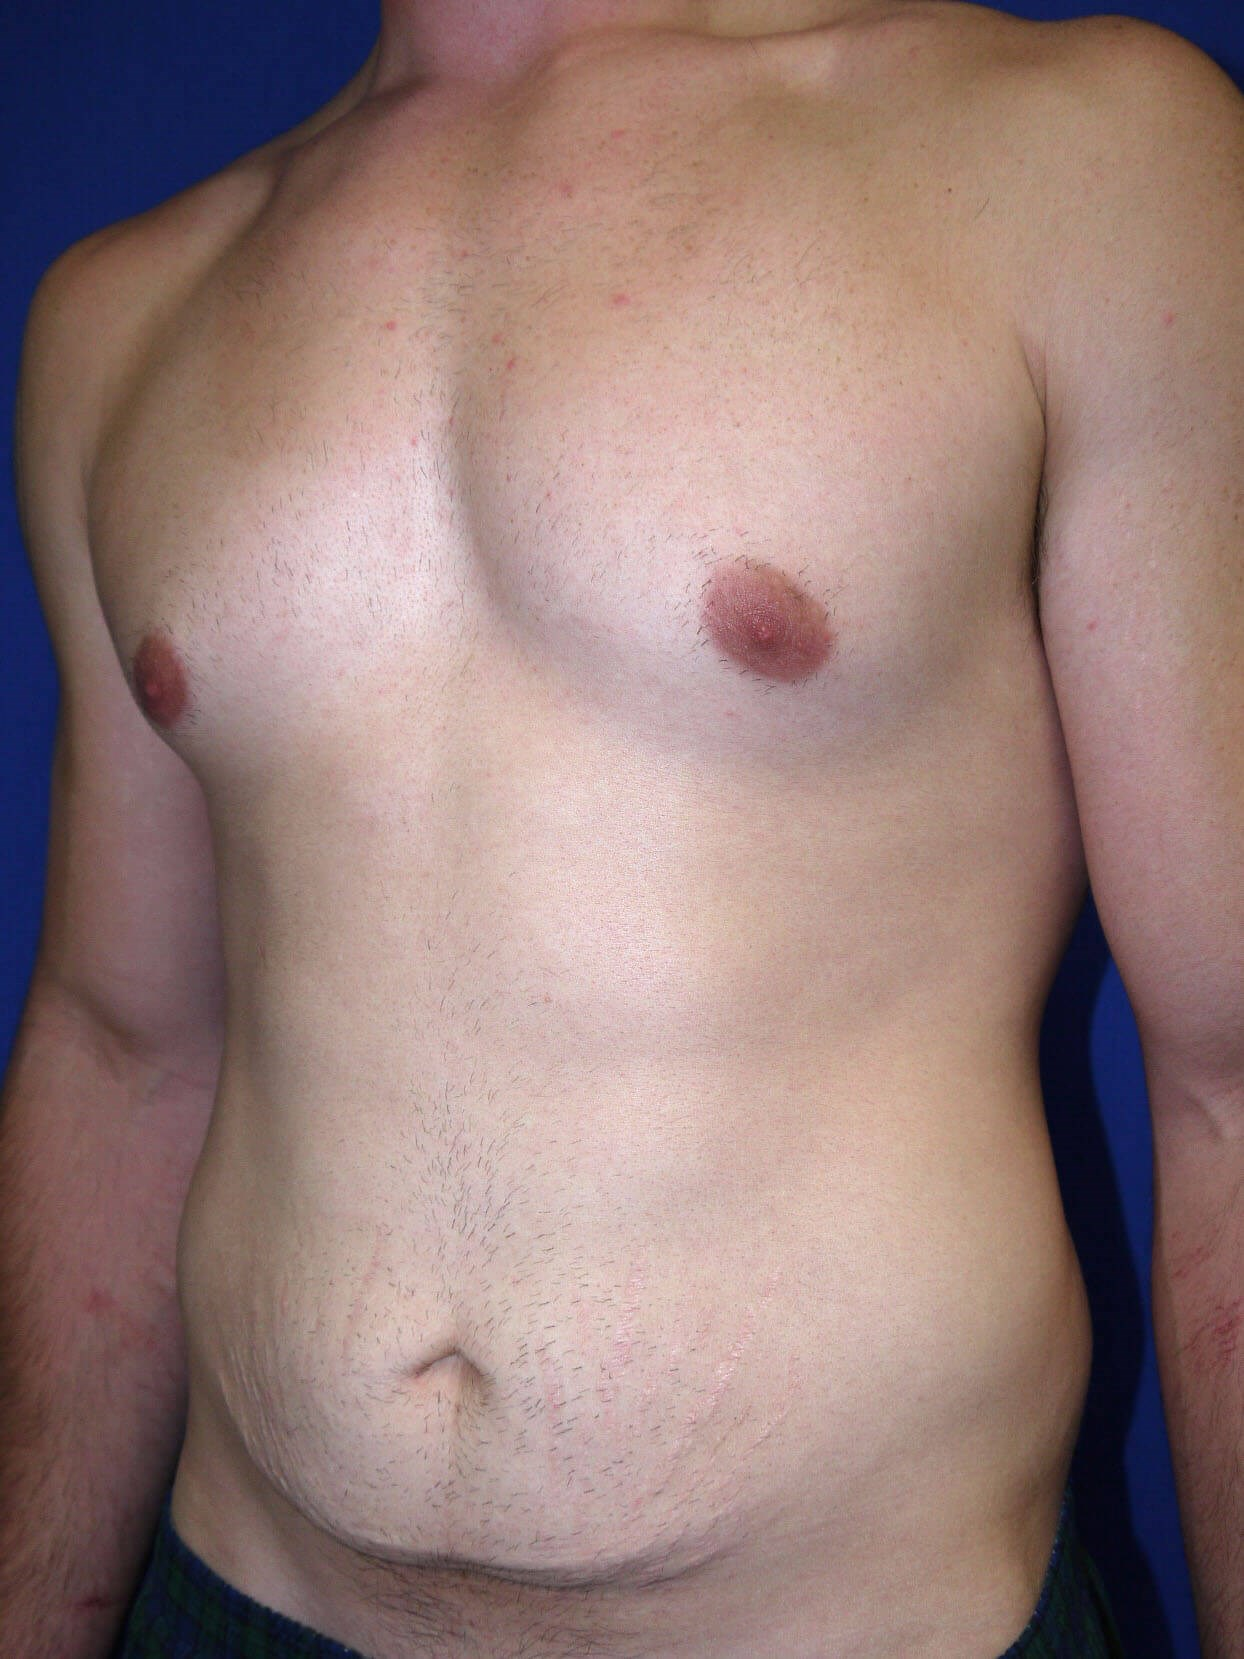 Before Tummy Tuck After Weight Loss Surgery Left Oblique View - Left Oblique View